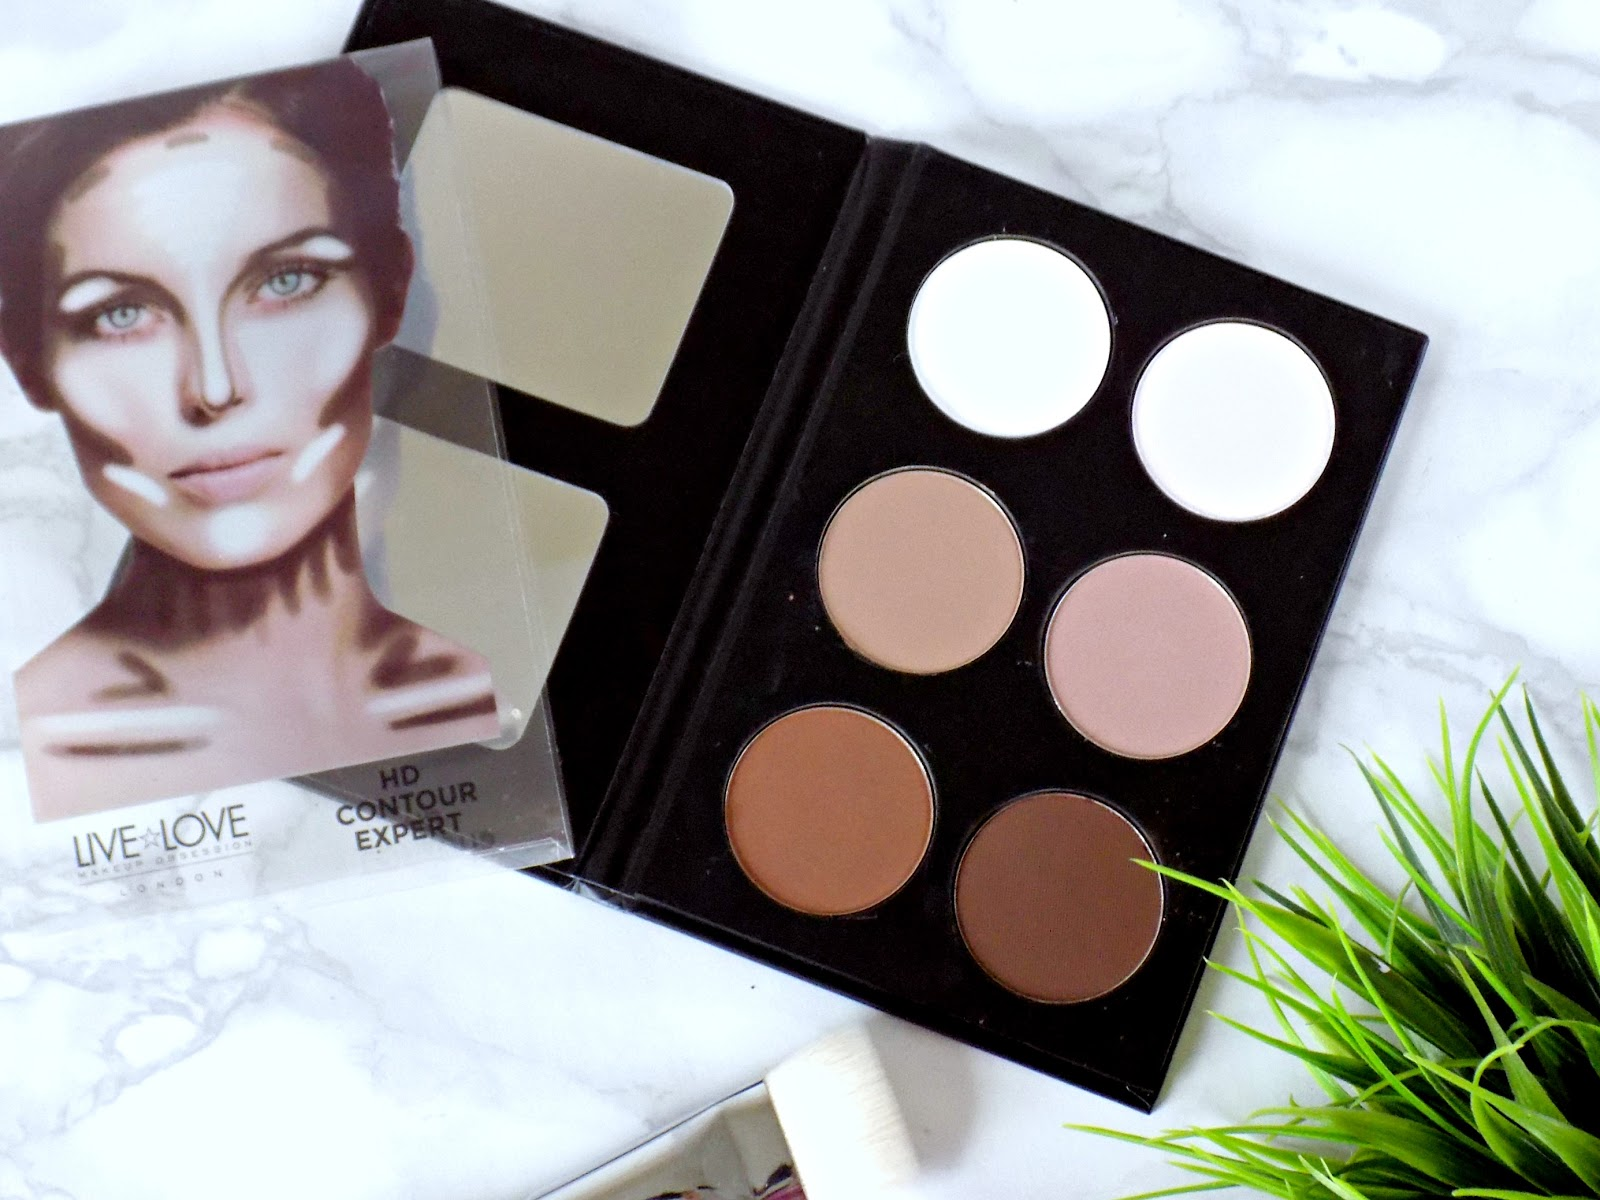 Live Love London HD Contour palette